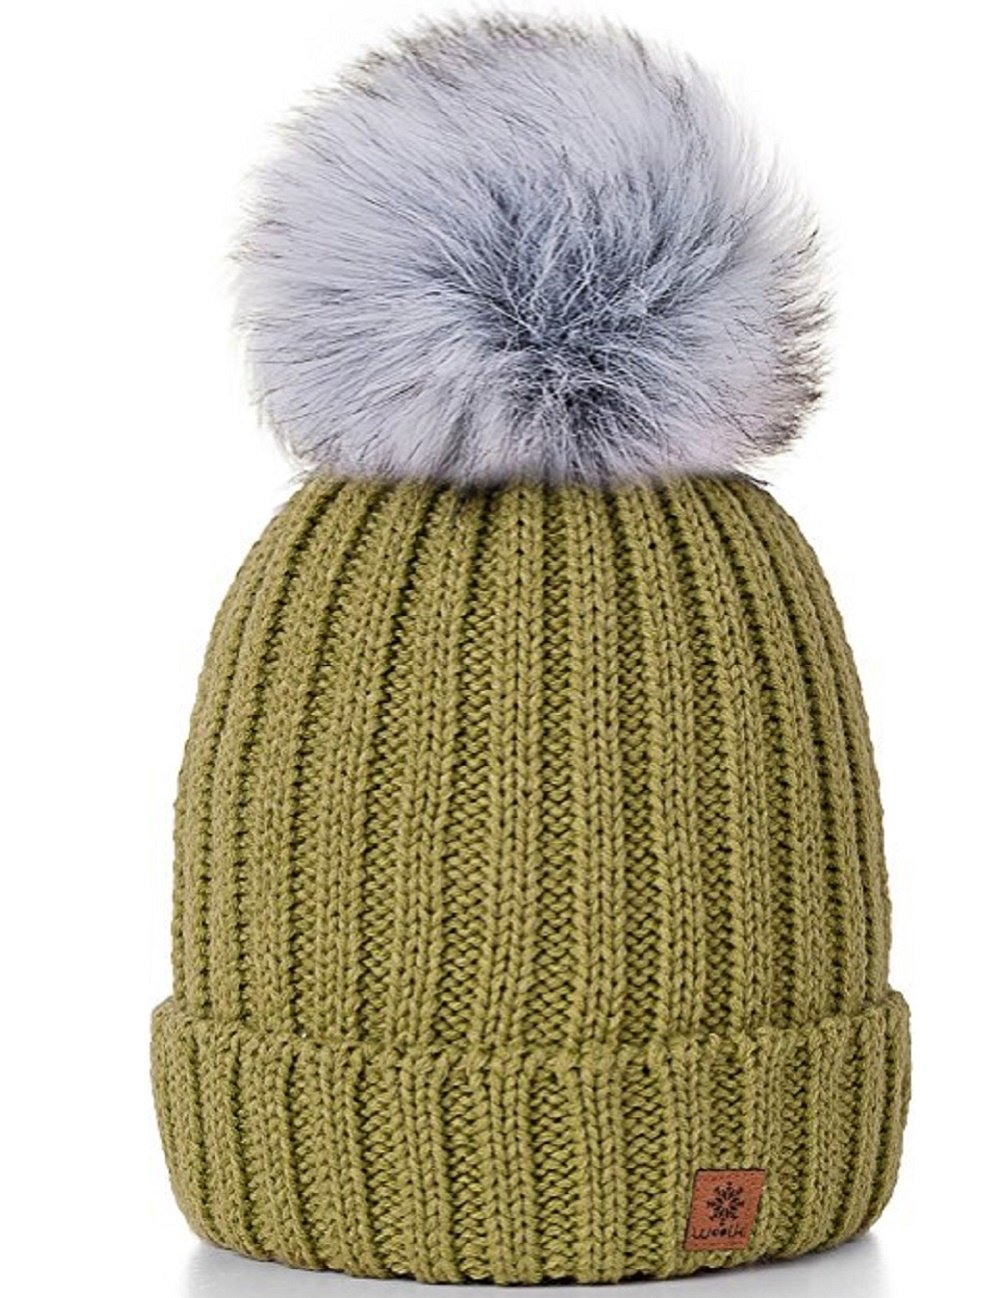 4sold Rita Womens Girls Winter Hat Wool Knitted Beanie with Large Pom Pom Cap Ski Snowboard Hats Bobble